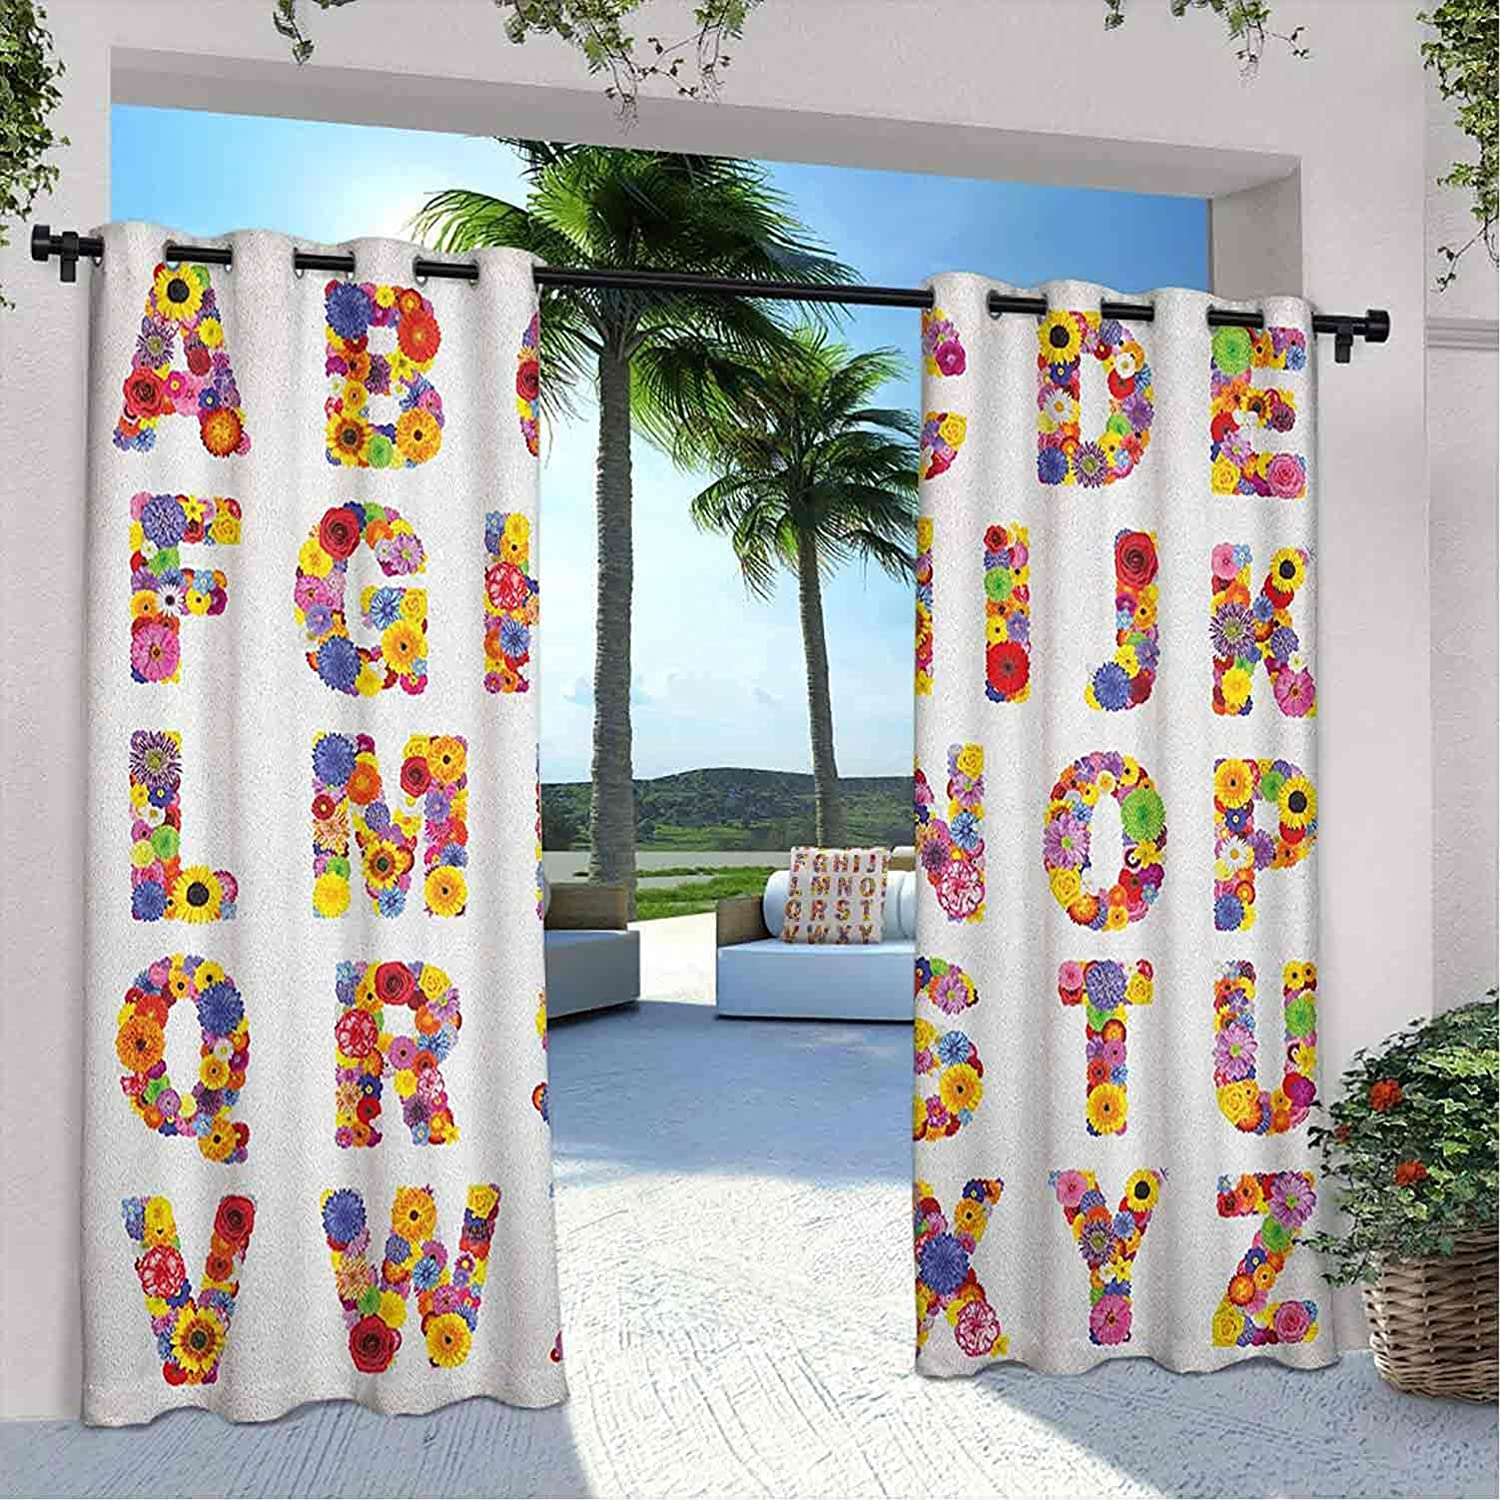 Outdoor Privacy Letters Curtain Colorful Alphabet 5 ☆ very popular with Flowers Seasonal Wrap Introduction